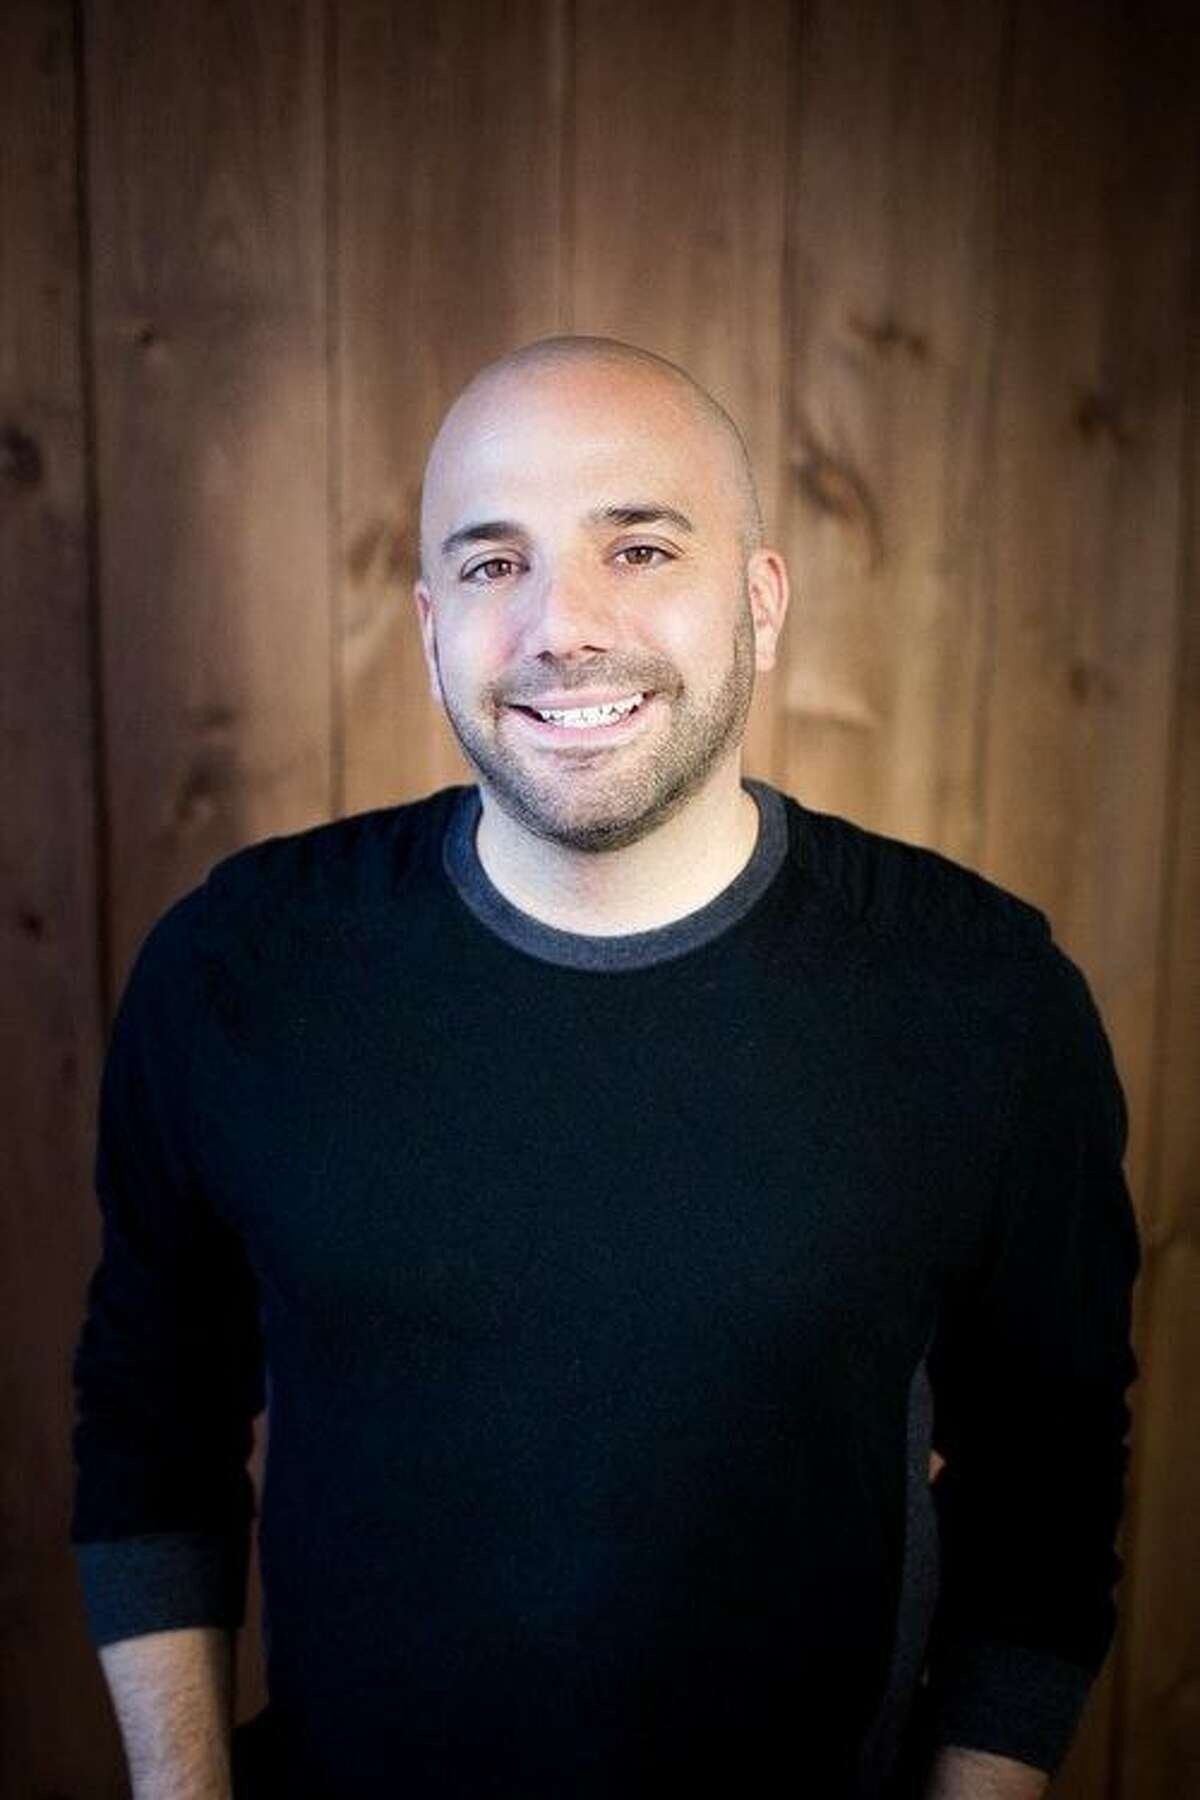 The Connecticut Comedy Festival includes a performance by Paul Virzi April 27 at Fairfield Circle Inn.